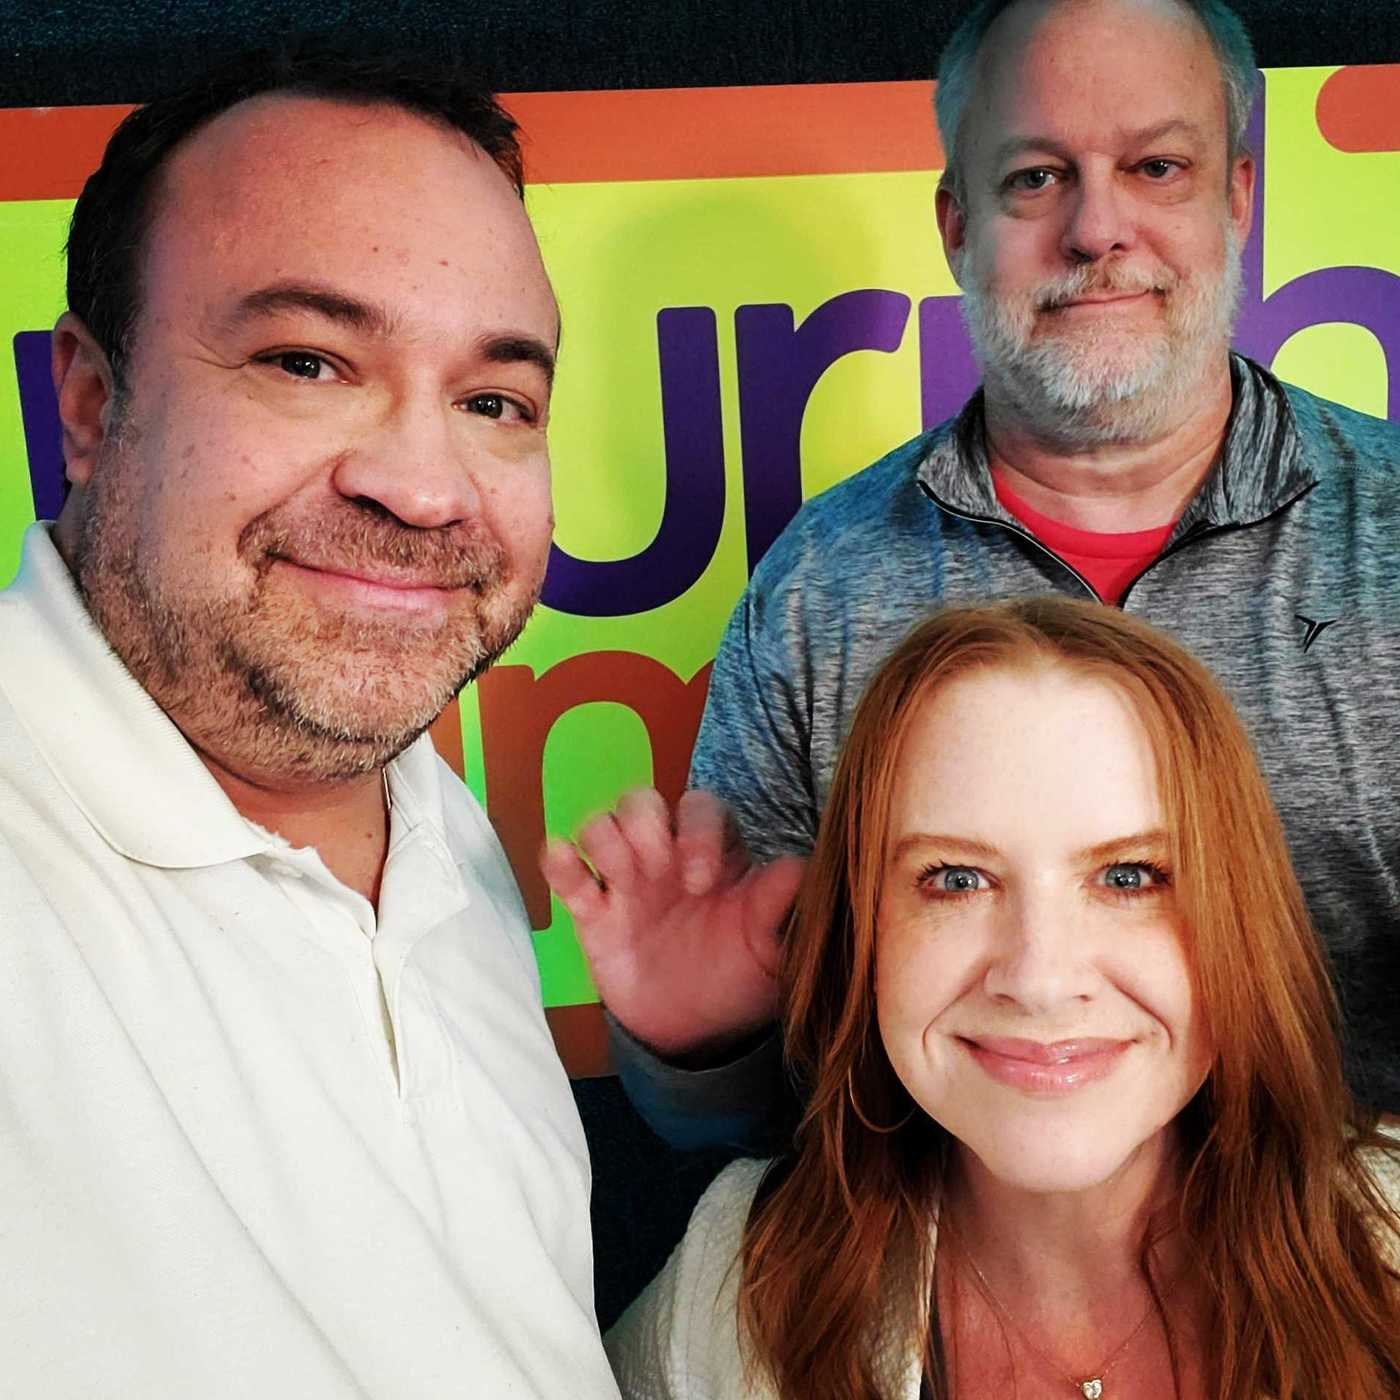 After The Show PODCAST: Will Jodi ever learn her lesson?